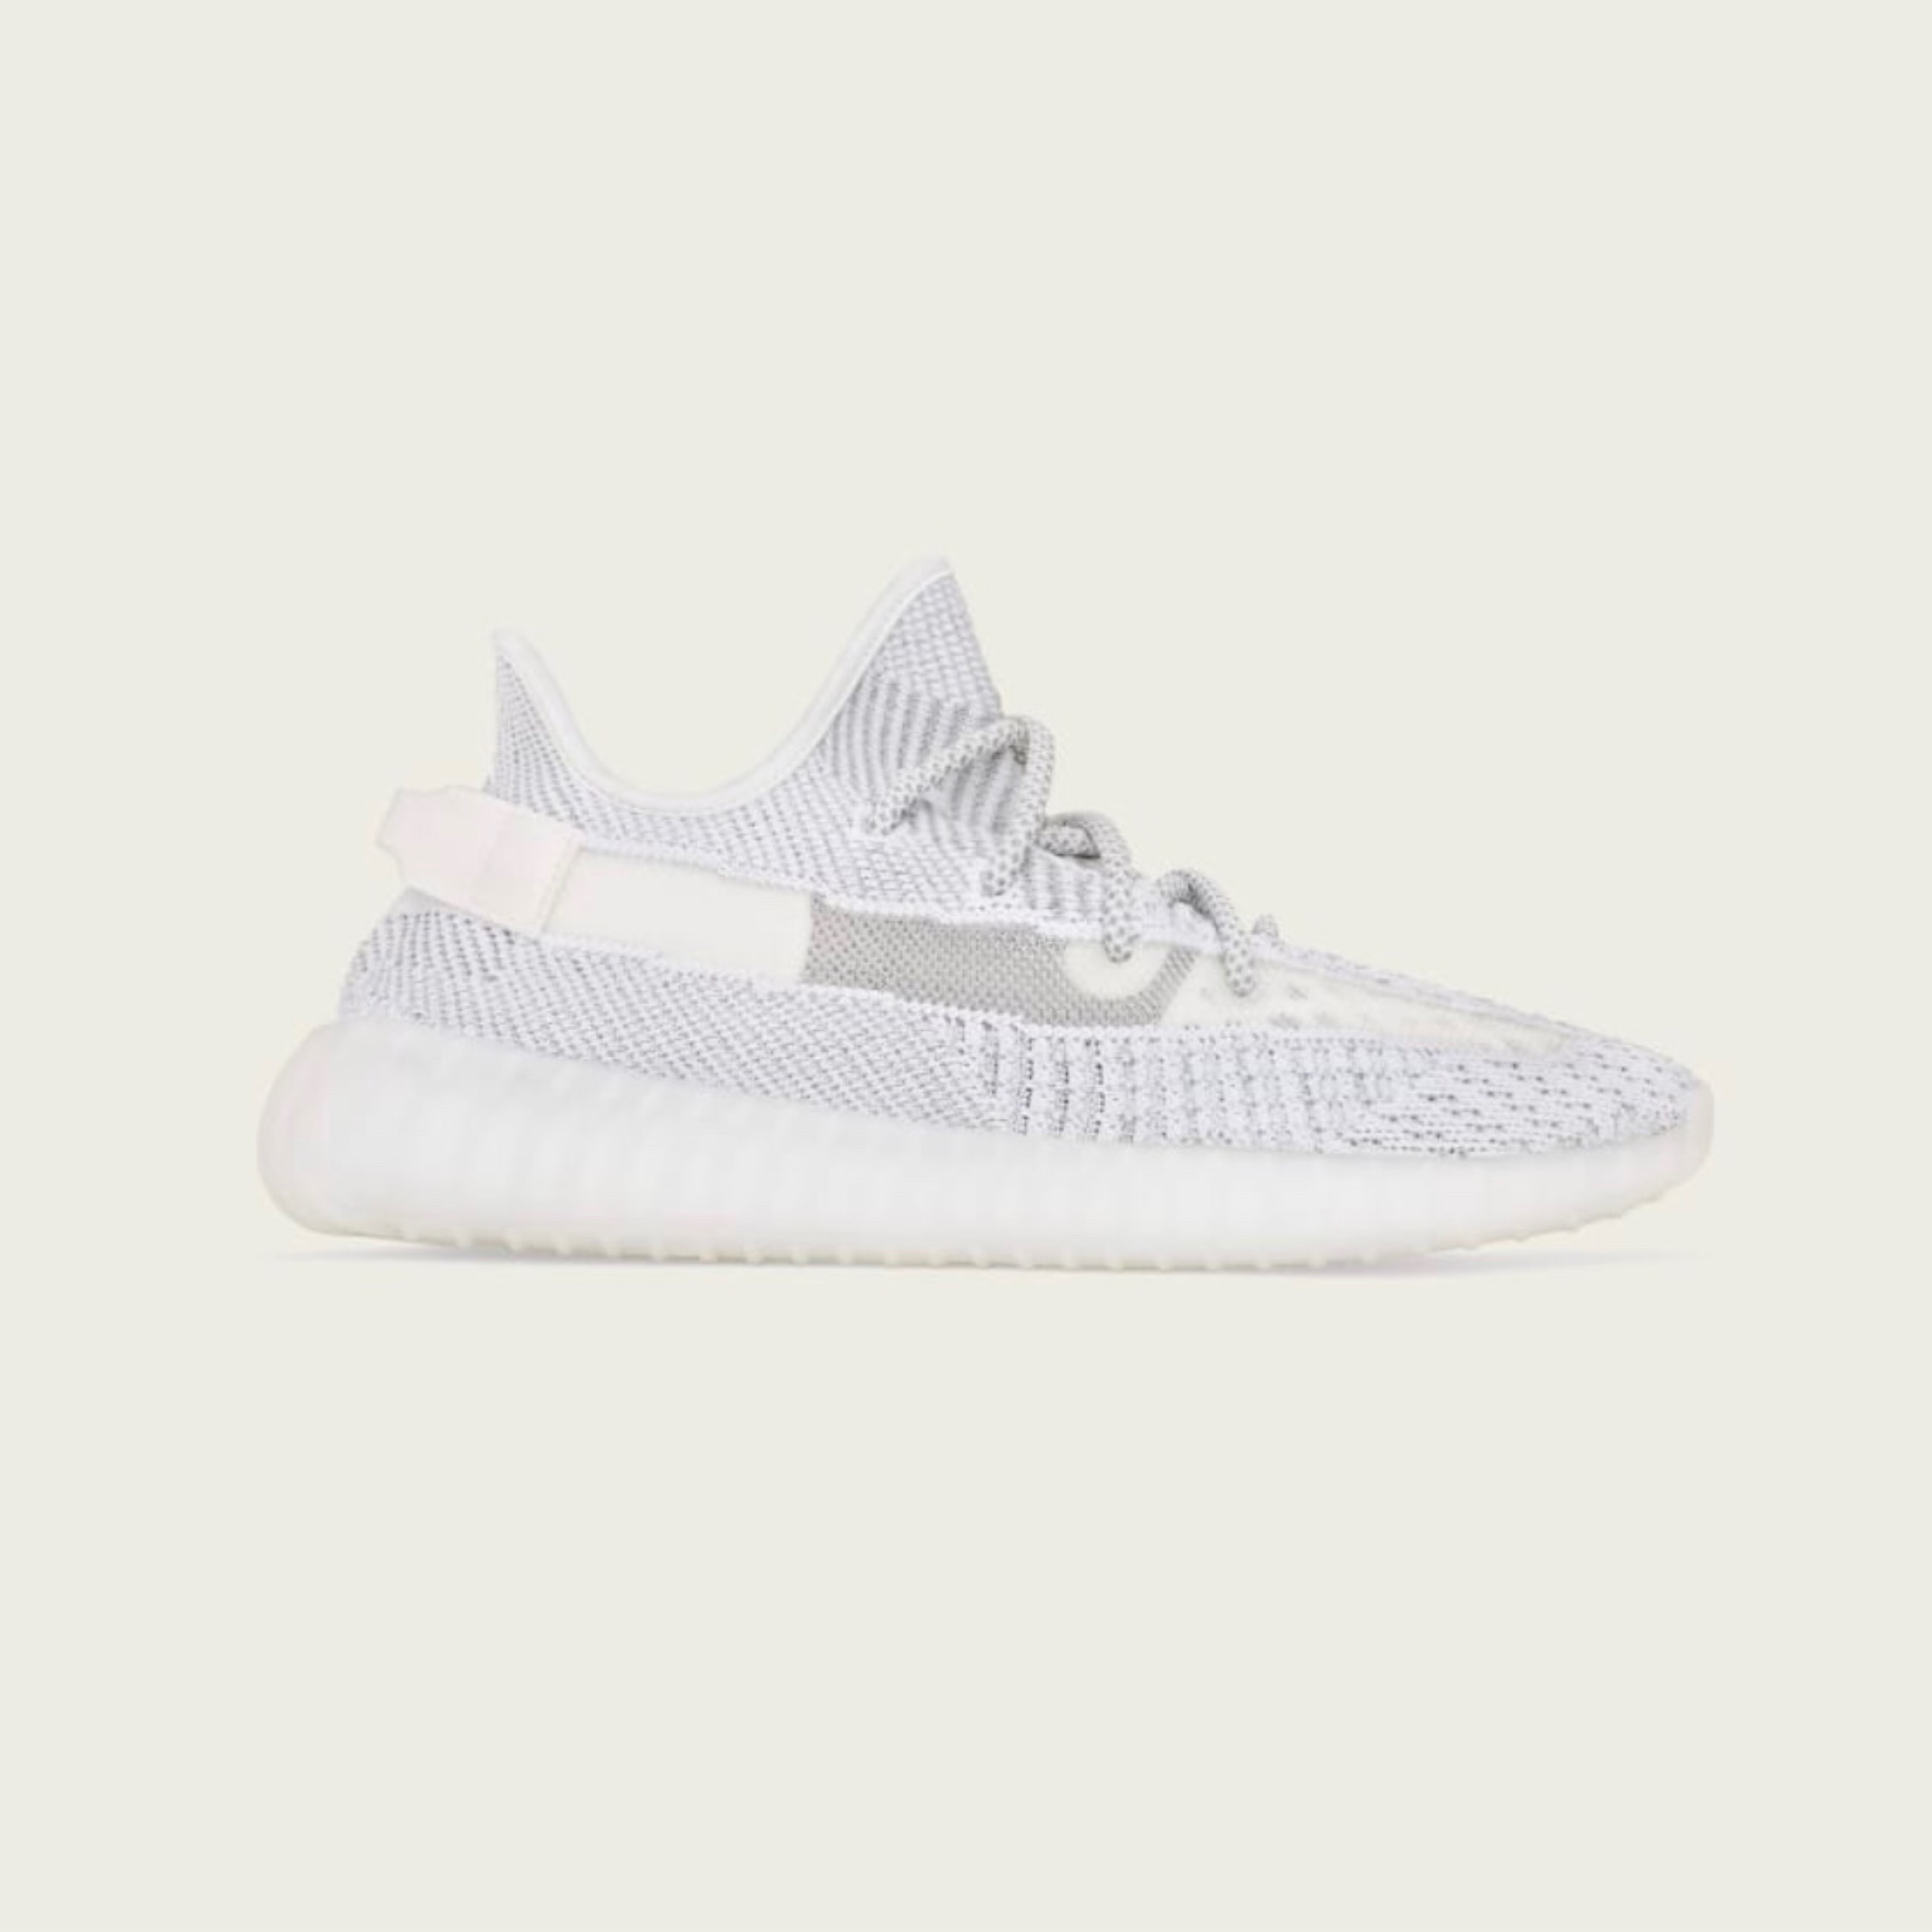 Yeezy Boost 350 V2 Static Non Reflective